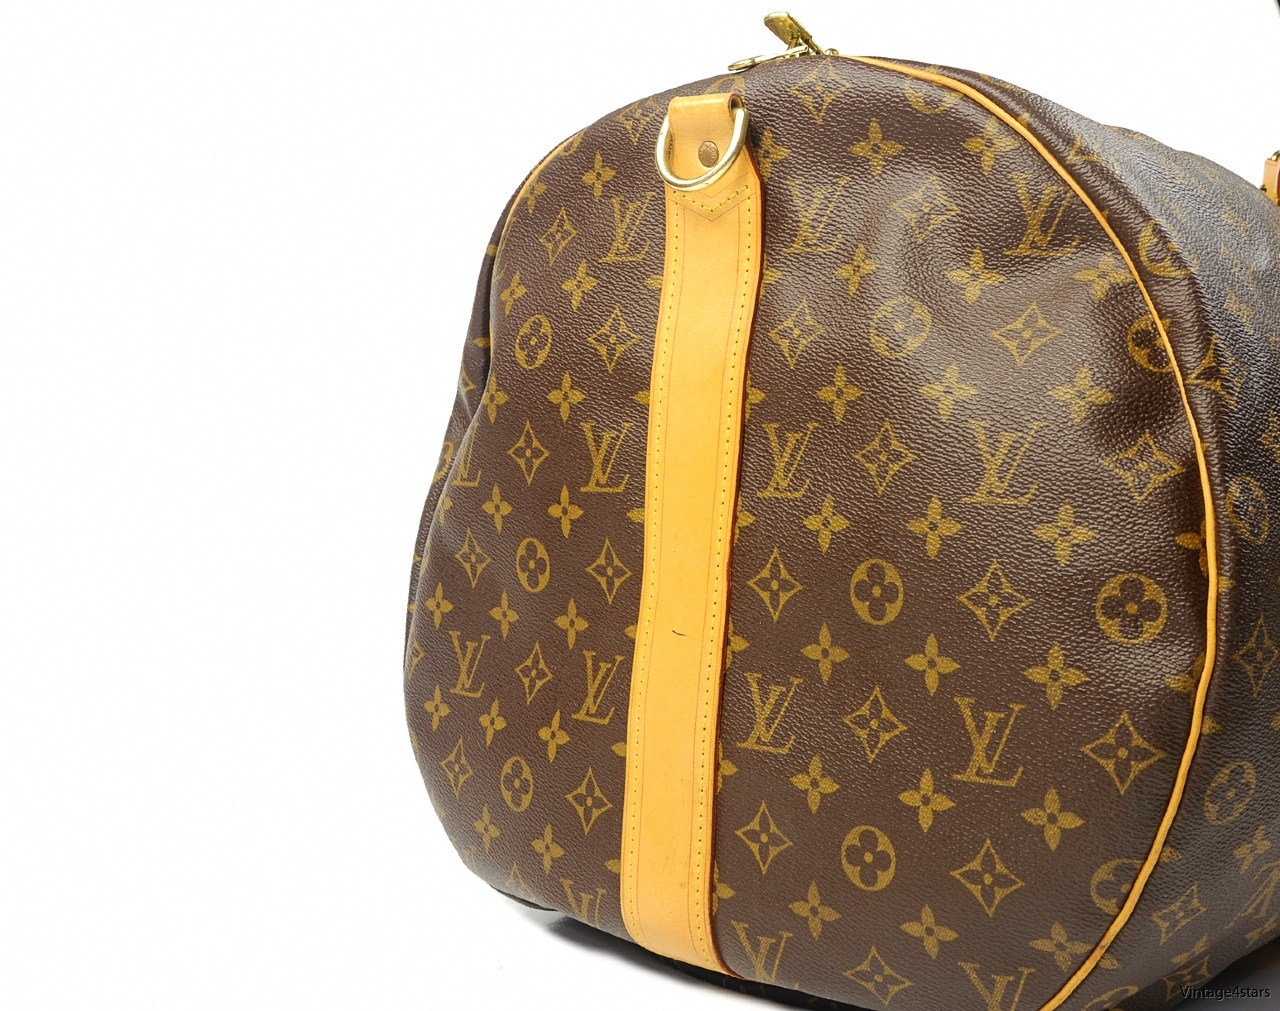 LOUIS VUITTON SAC POLOCHON 70 8